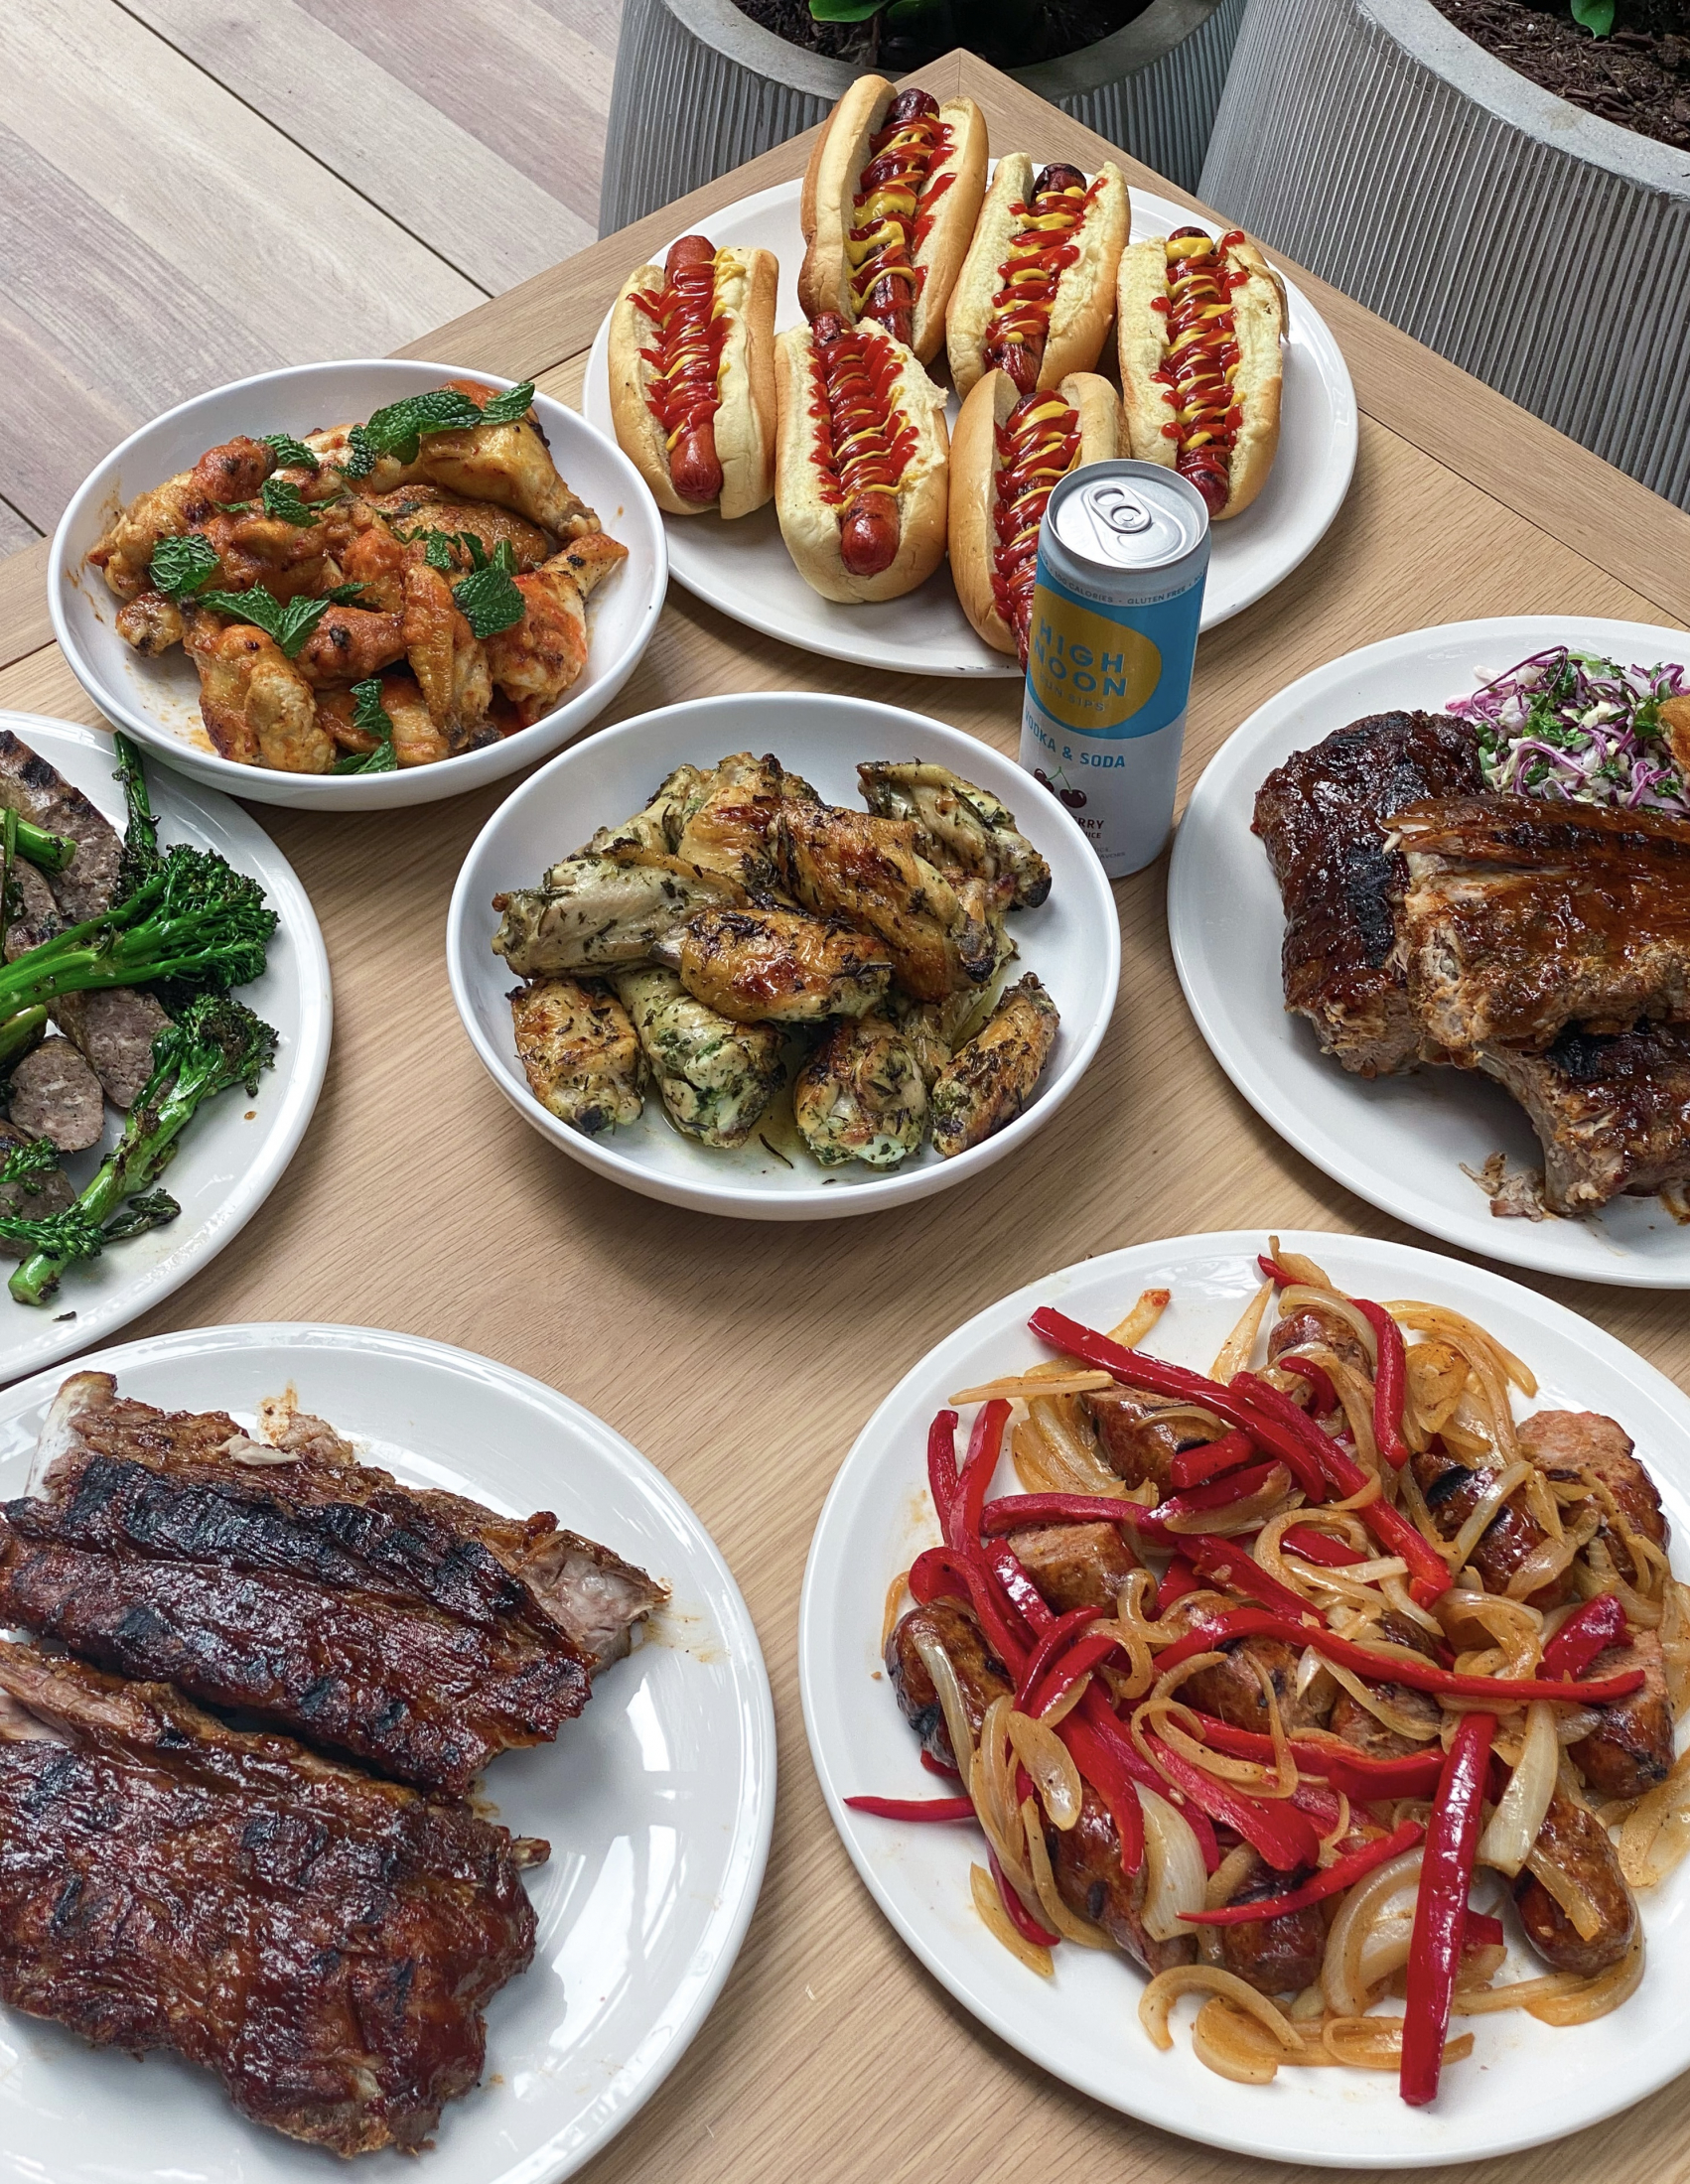 wooden table with plates of ribs and wings and hot dogs